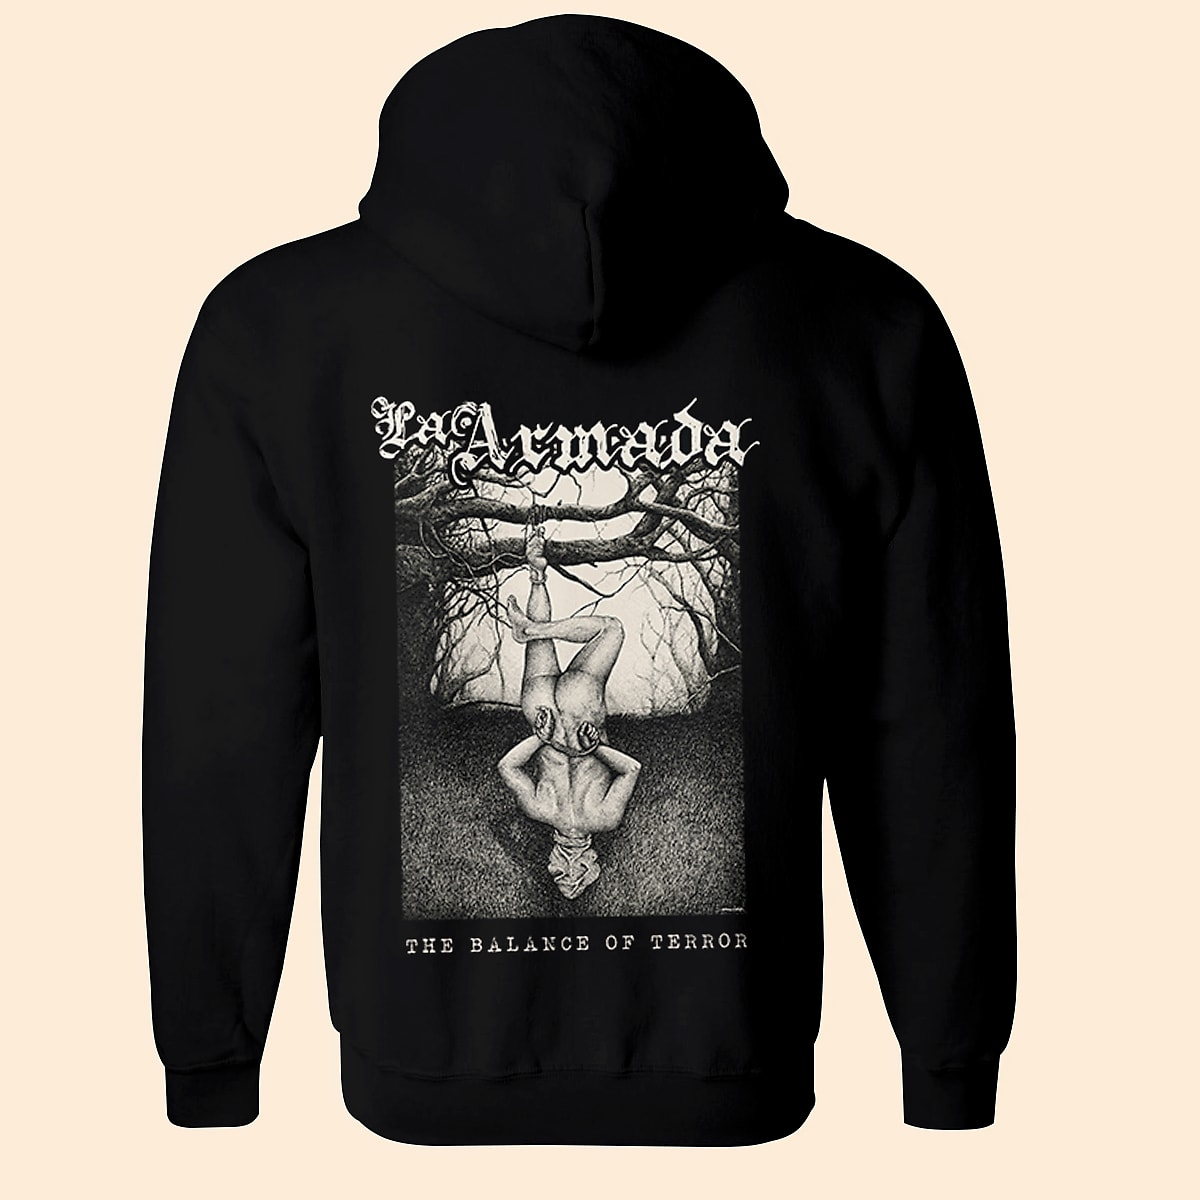 La Armada - The Balance Of Terror - Hoodie  - XL